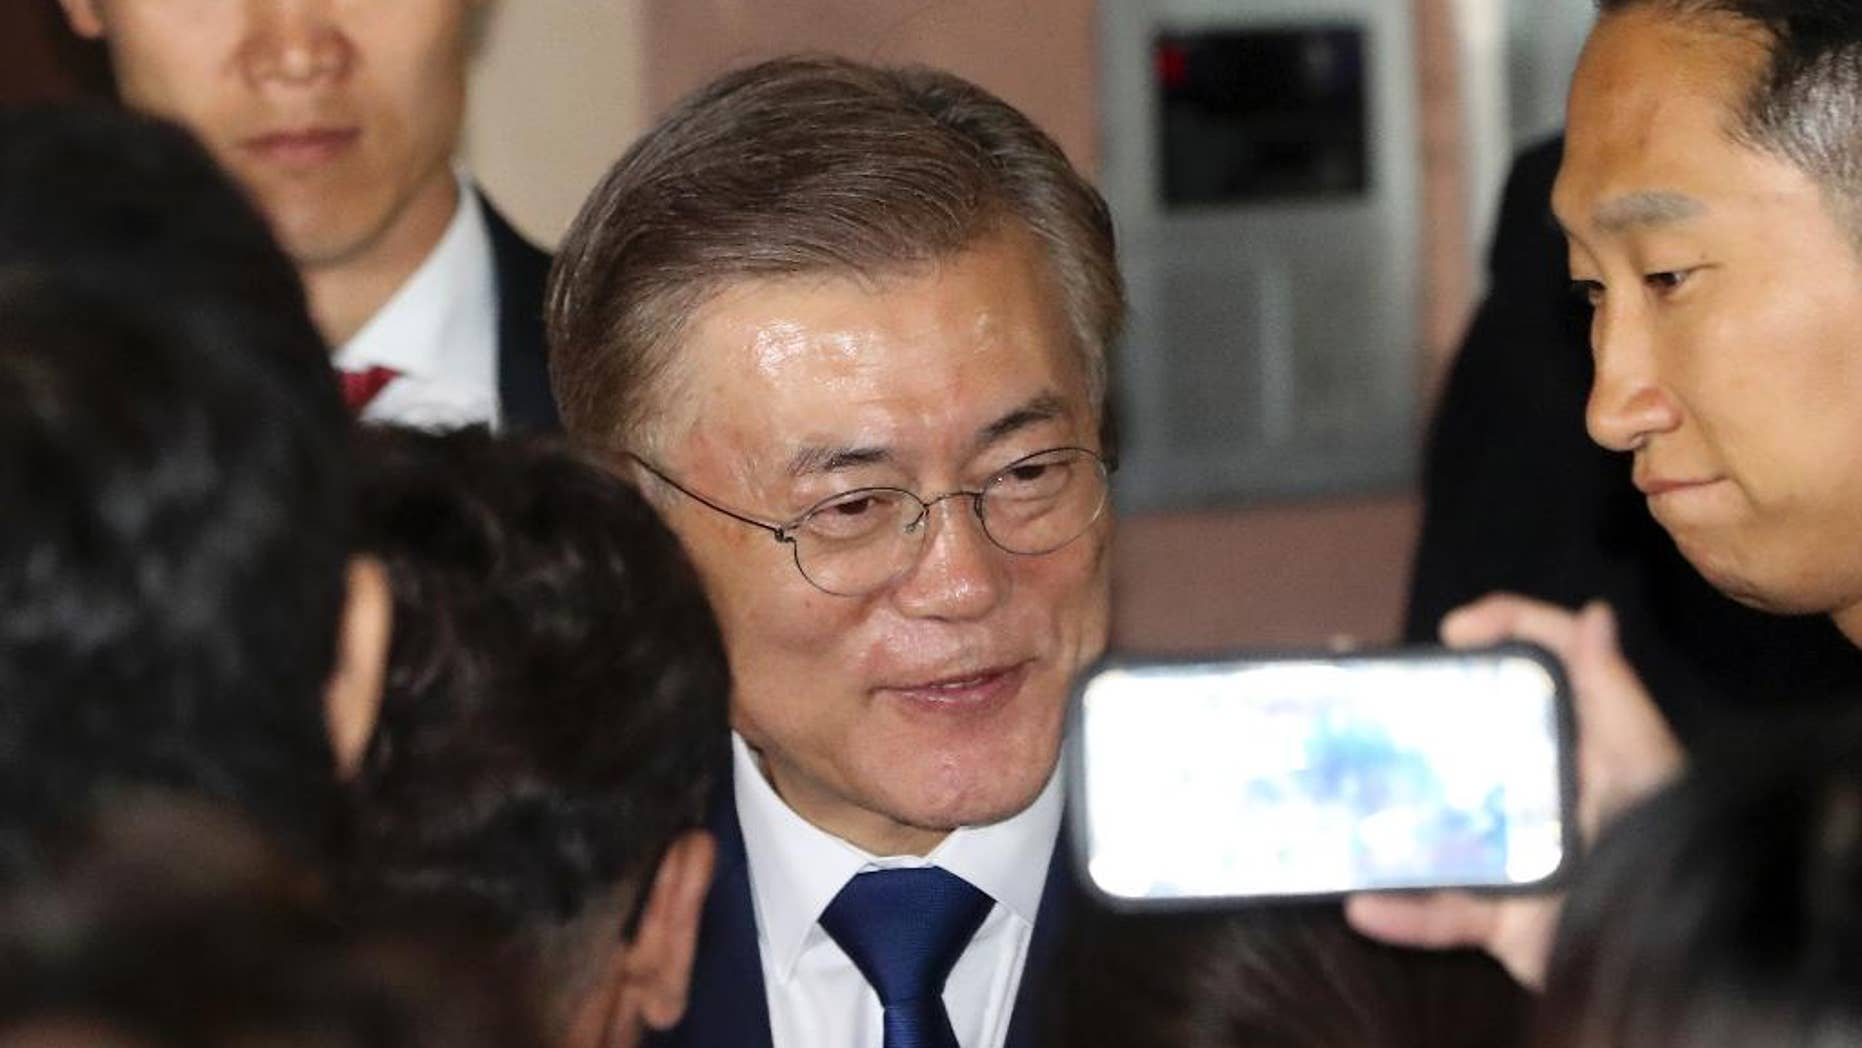 South Korea's presidential candidate Moon Jae-in of the Democratic Party is greeted by supporters in front of his house in Seoul, South Korea, Tuesday, May 9, 2017.   Moon Jae-in declared victory in South Korea's presidential election Tuesday after his two main rivals conceded. (AP Photo/Lee Jin-man)